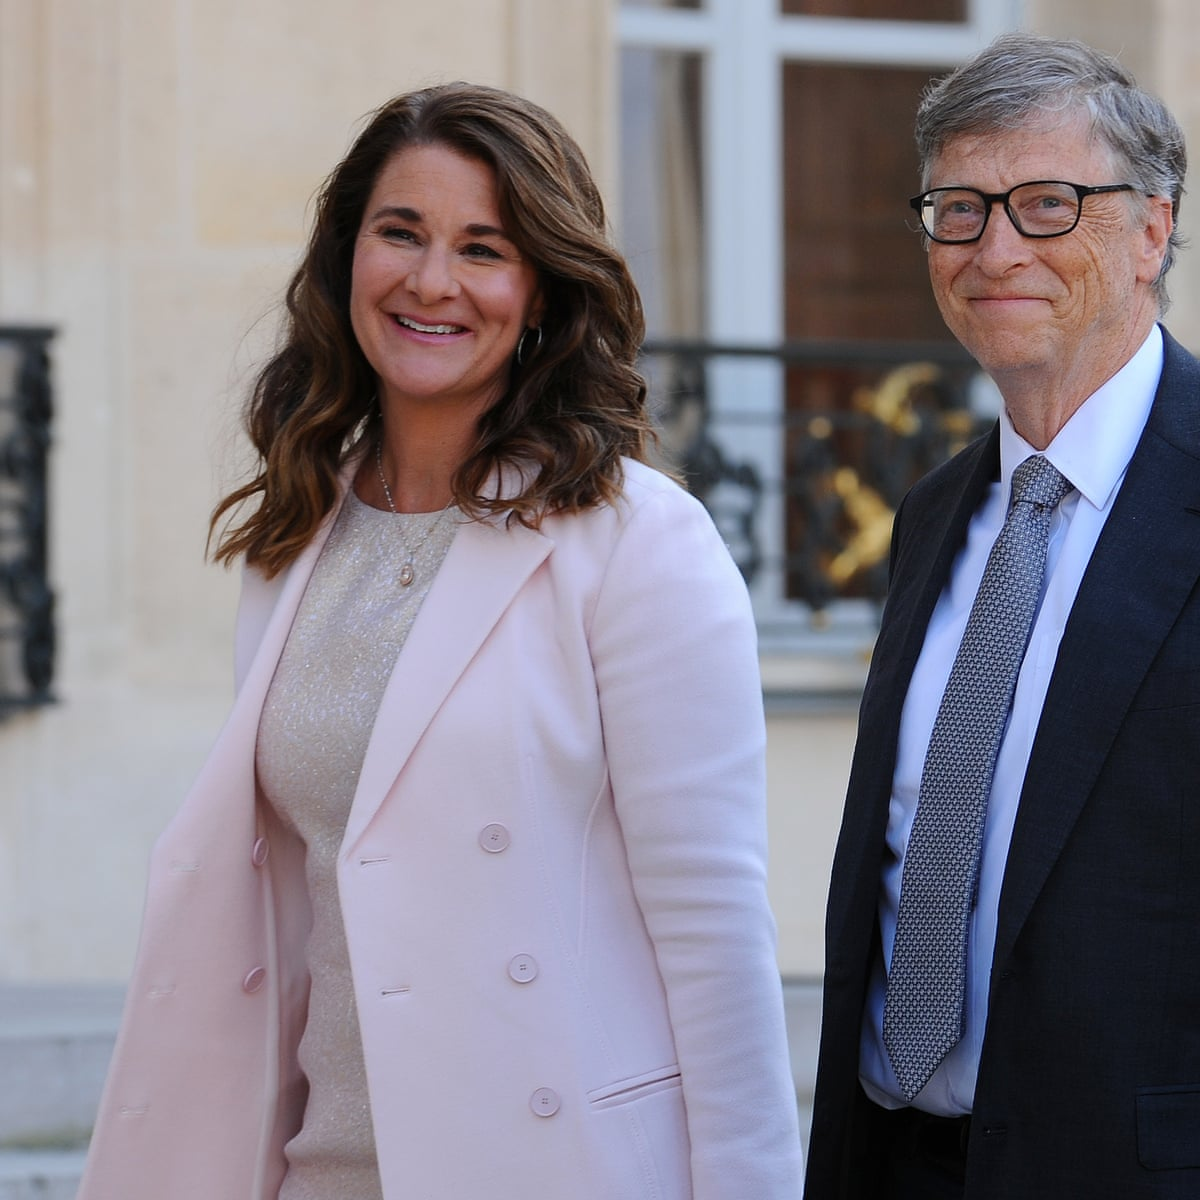 bill gate and his wife